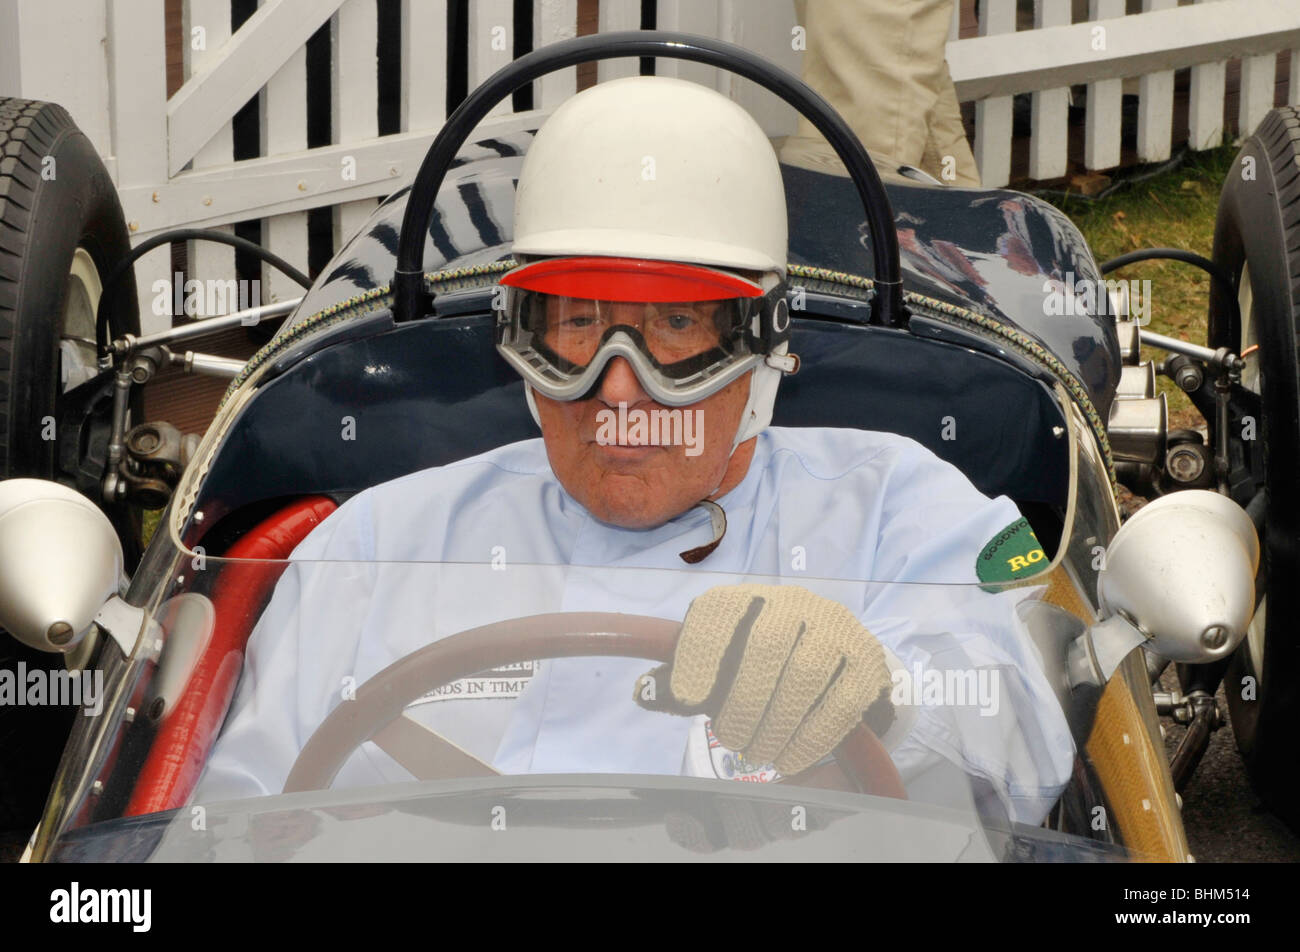 Sir Stirling Moss OBE at Goodwood Revival 2009  celebrating his 80th birthday. - Stock Image